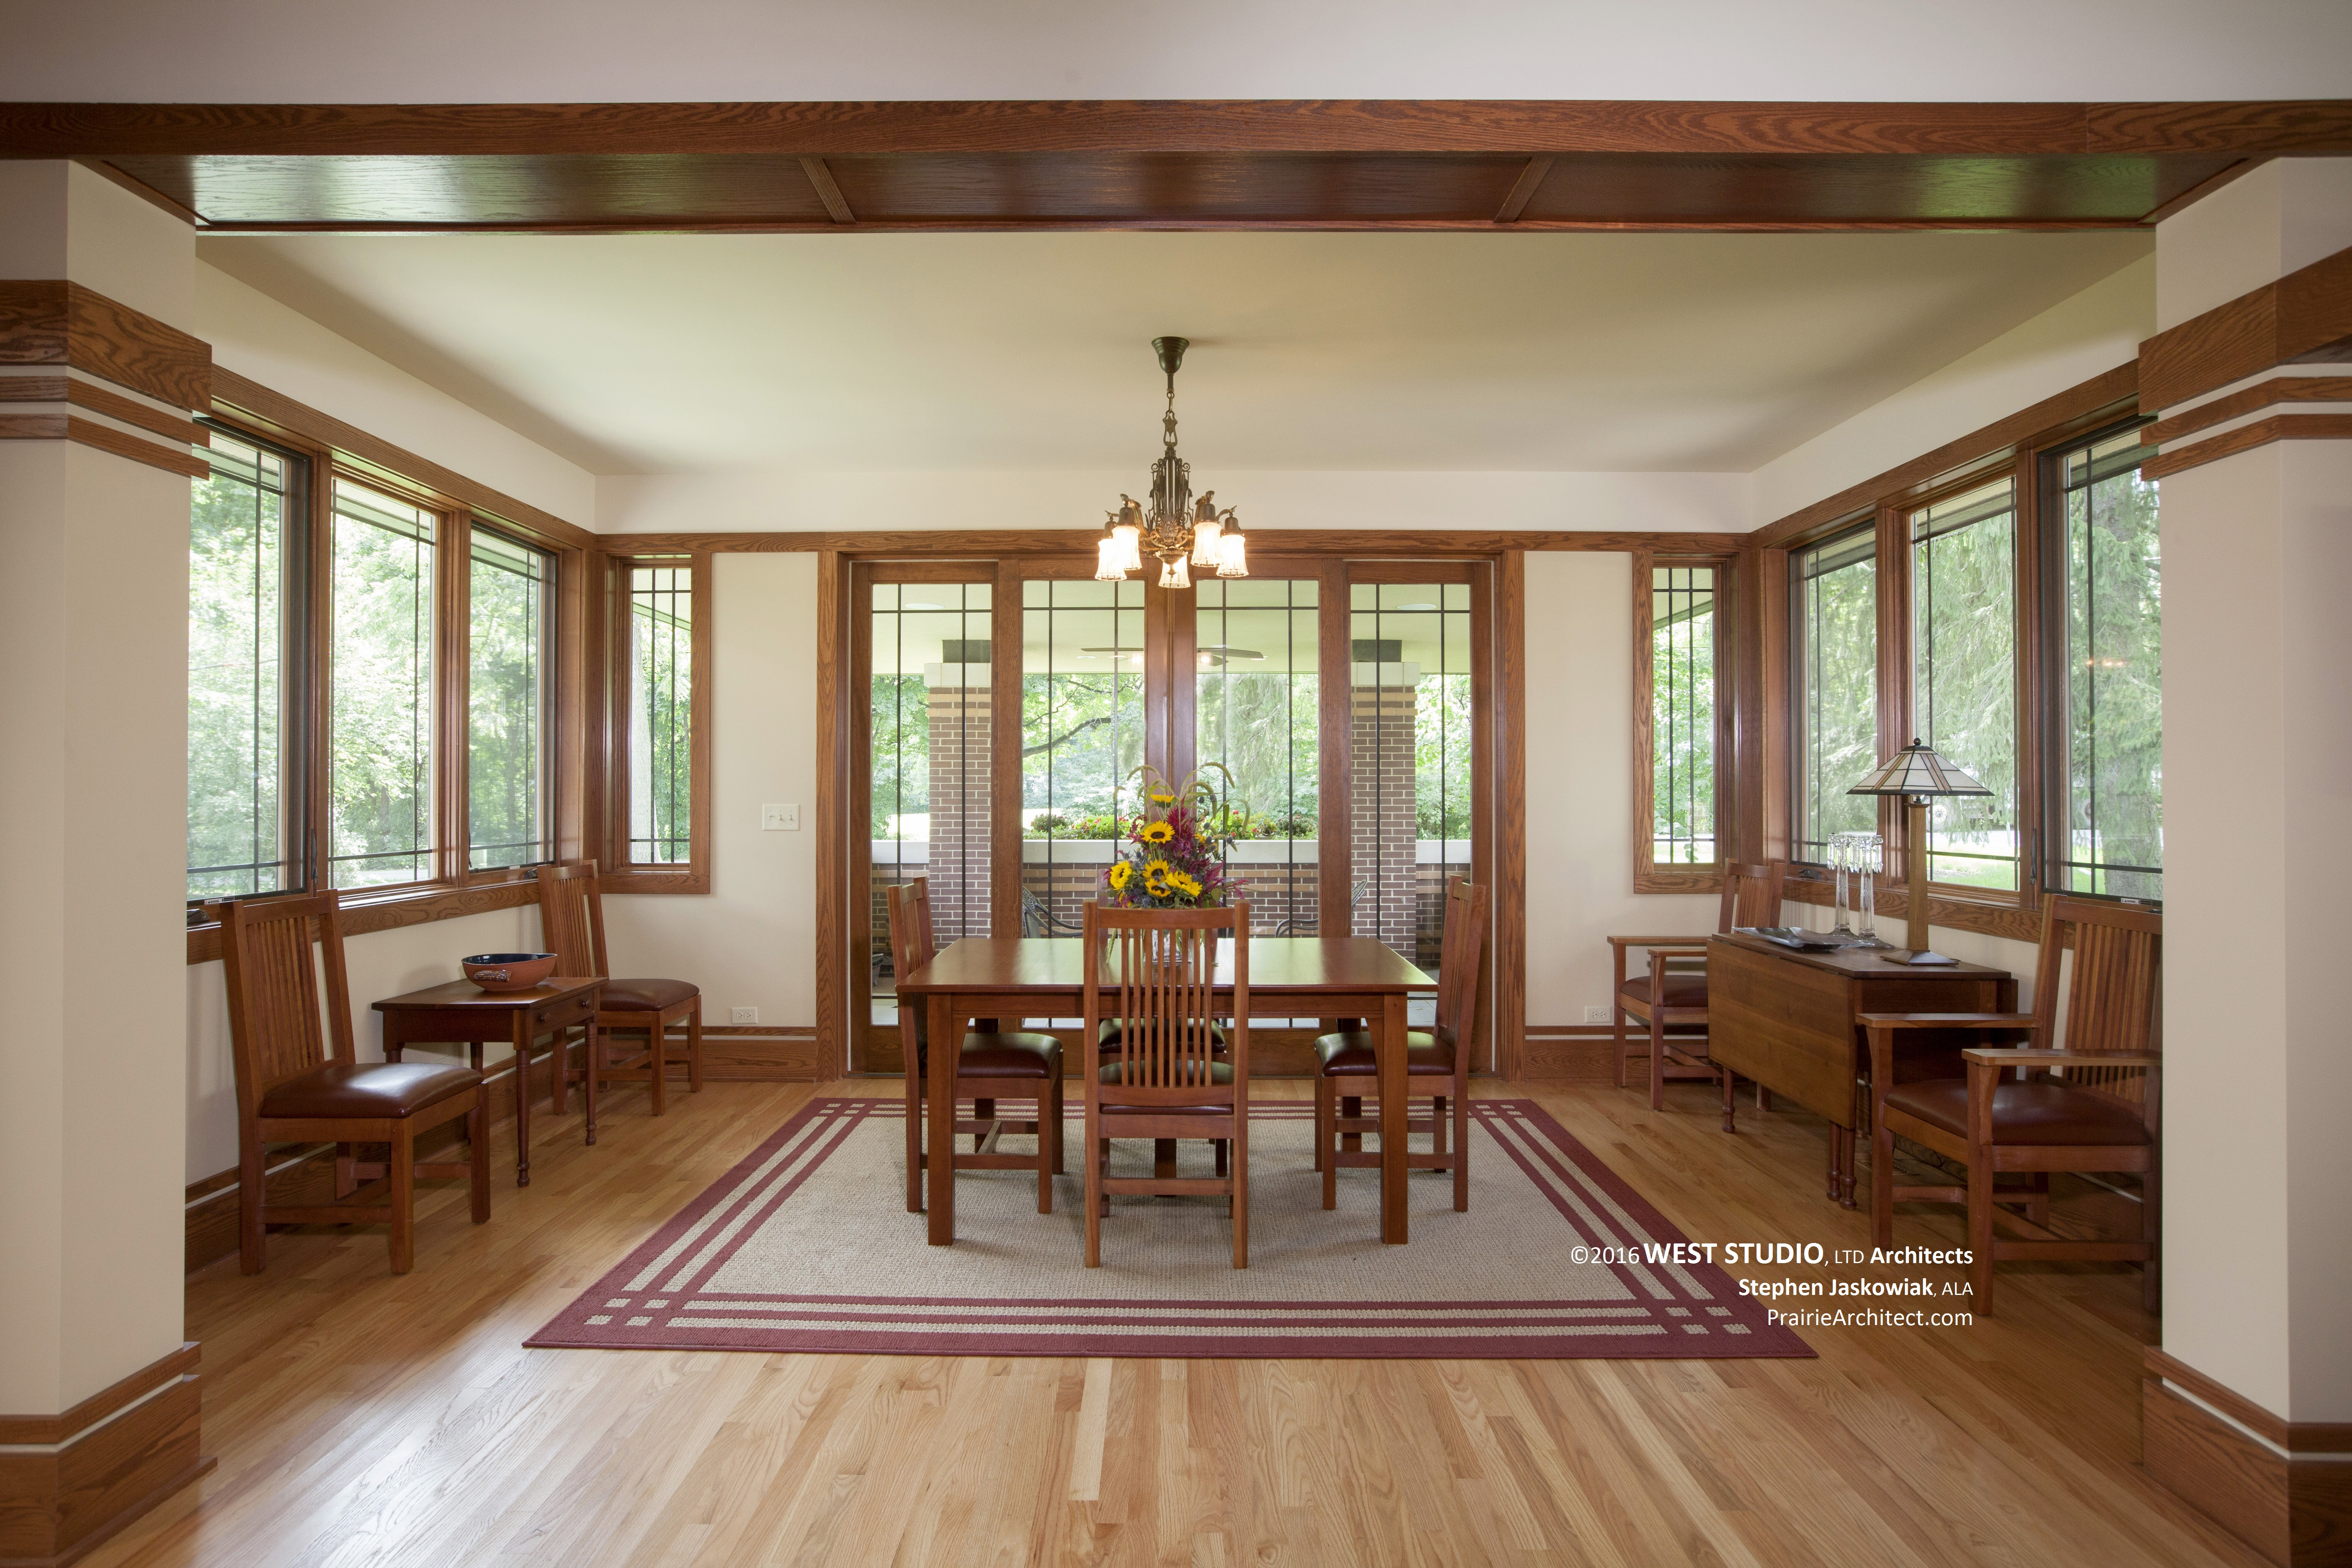 About client testimonials prairiearchitect Frank lloyd wright the rooms interiors and decorative arts